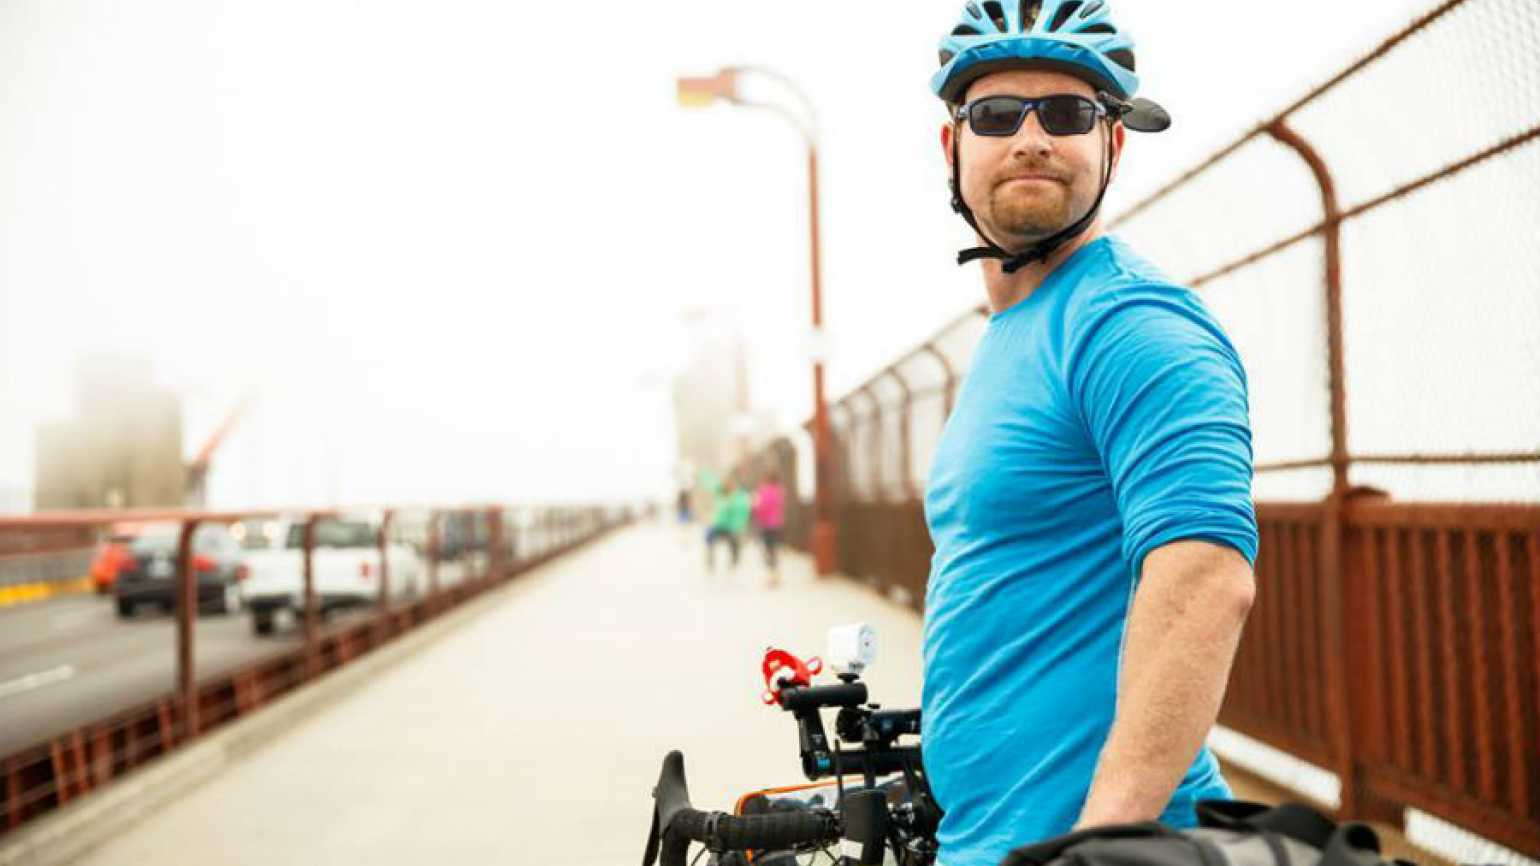 Sobriety Ride: Spencer Nee bikes for hope